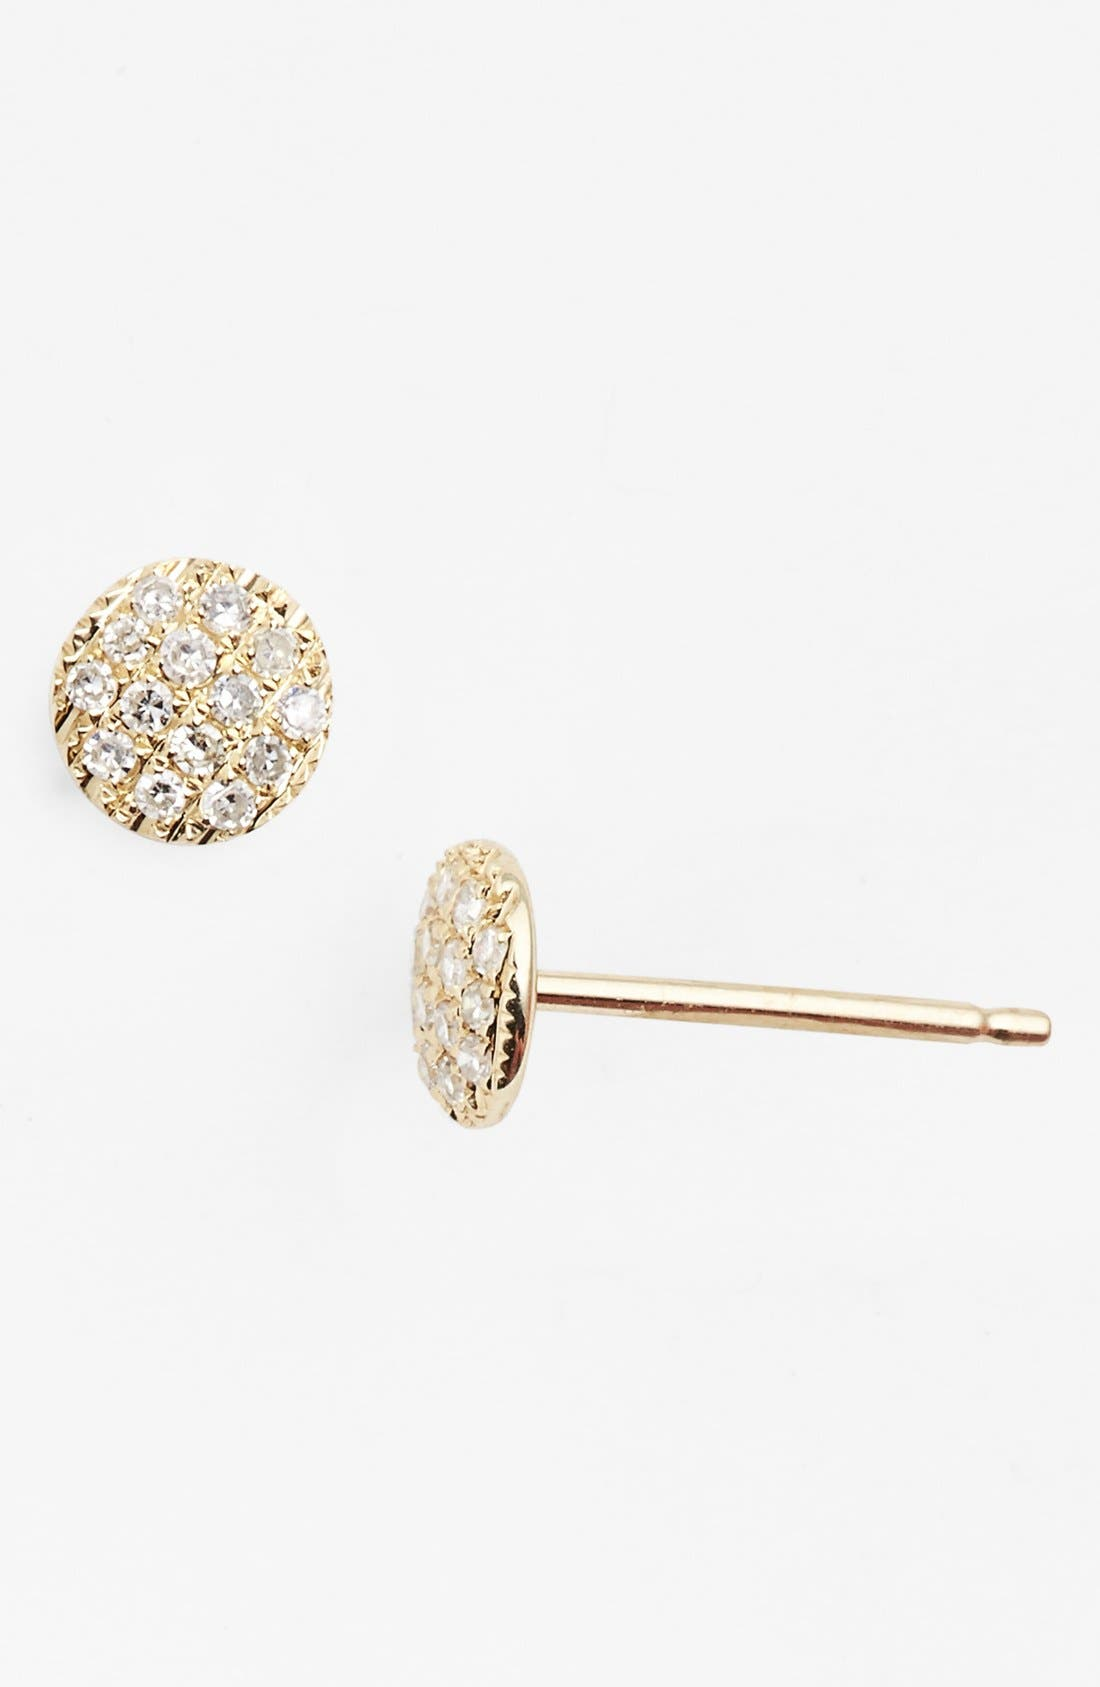 'Lauren Joy' Diamond Disc Stud Earrings,                             Main thumbnail 1, color,                             Yellow Gold